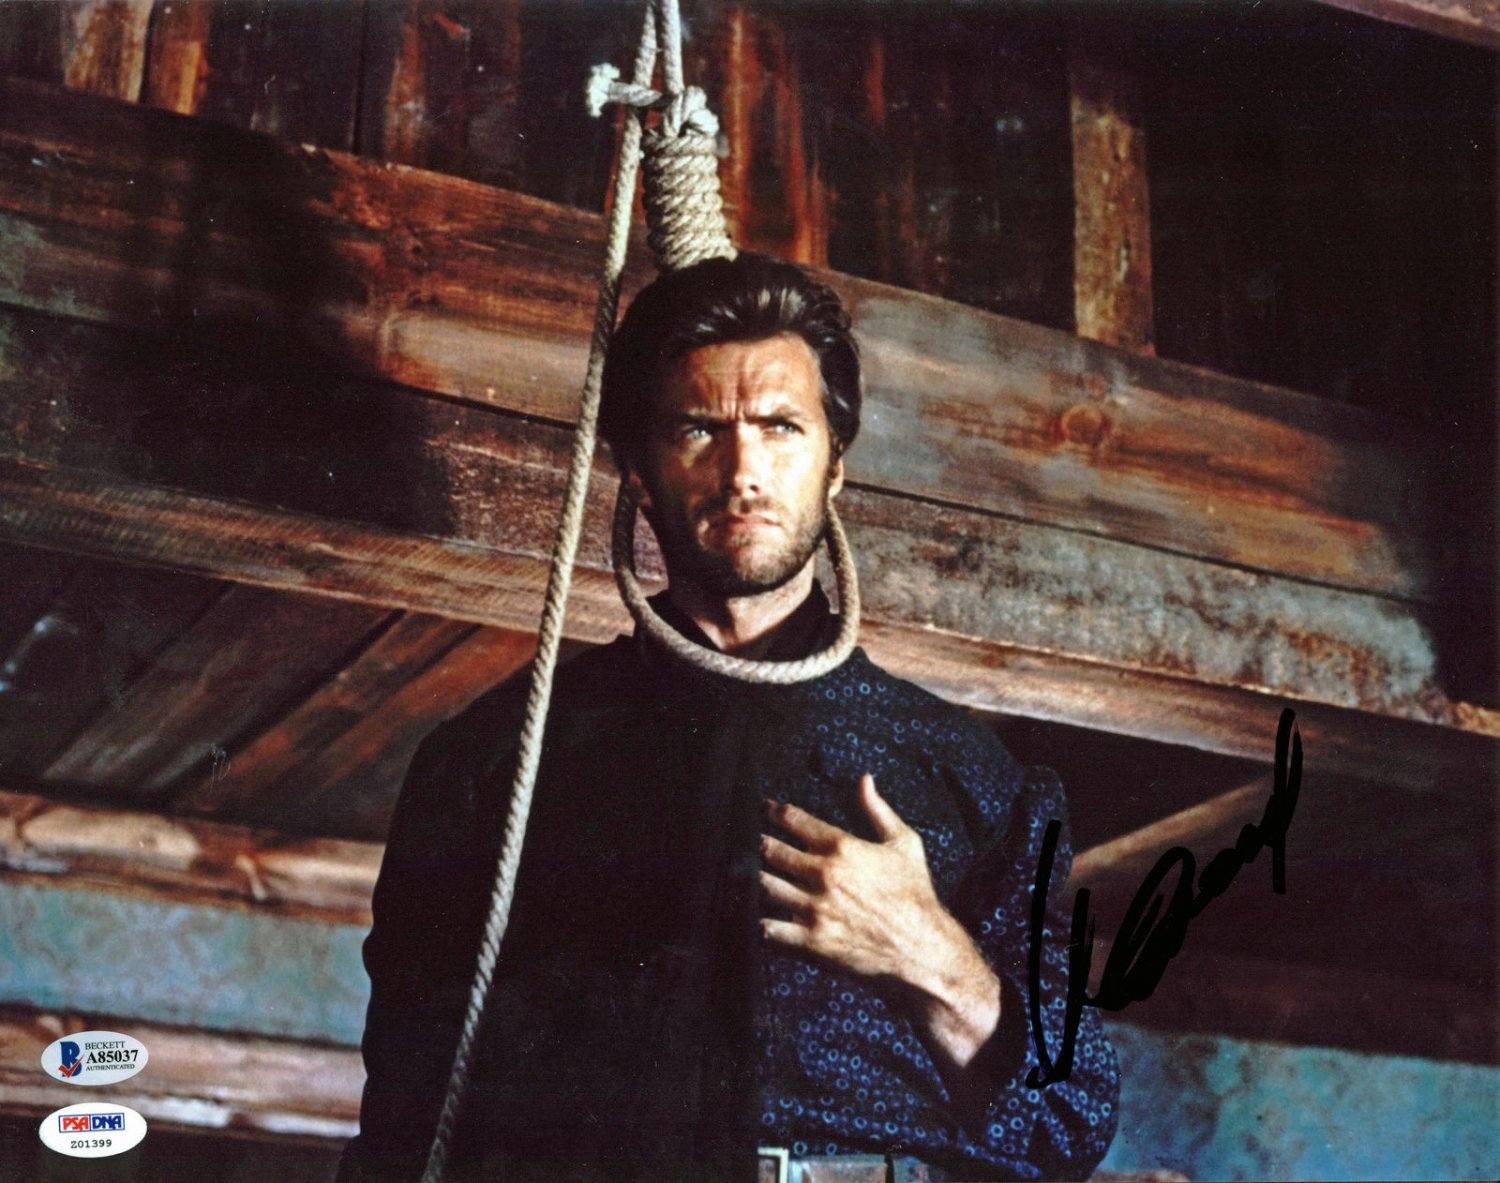 Clint Eastwood The Good, the Bad and the Ugly Autographed Signed 11x14 Photo BECKETT